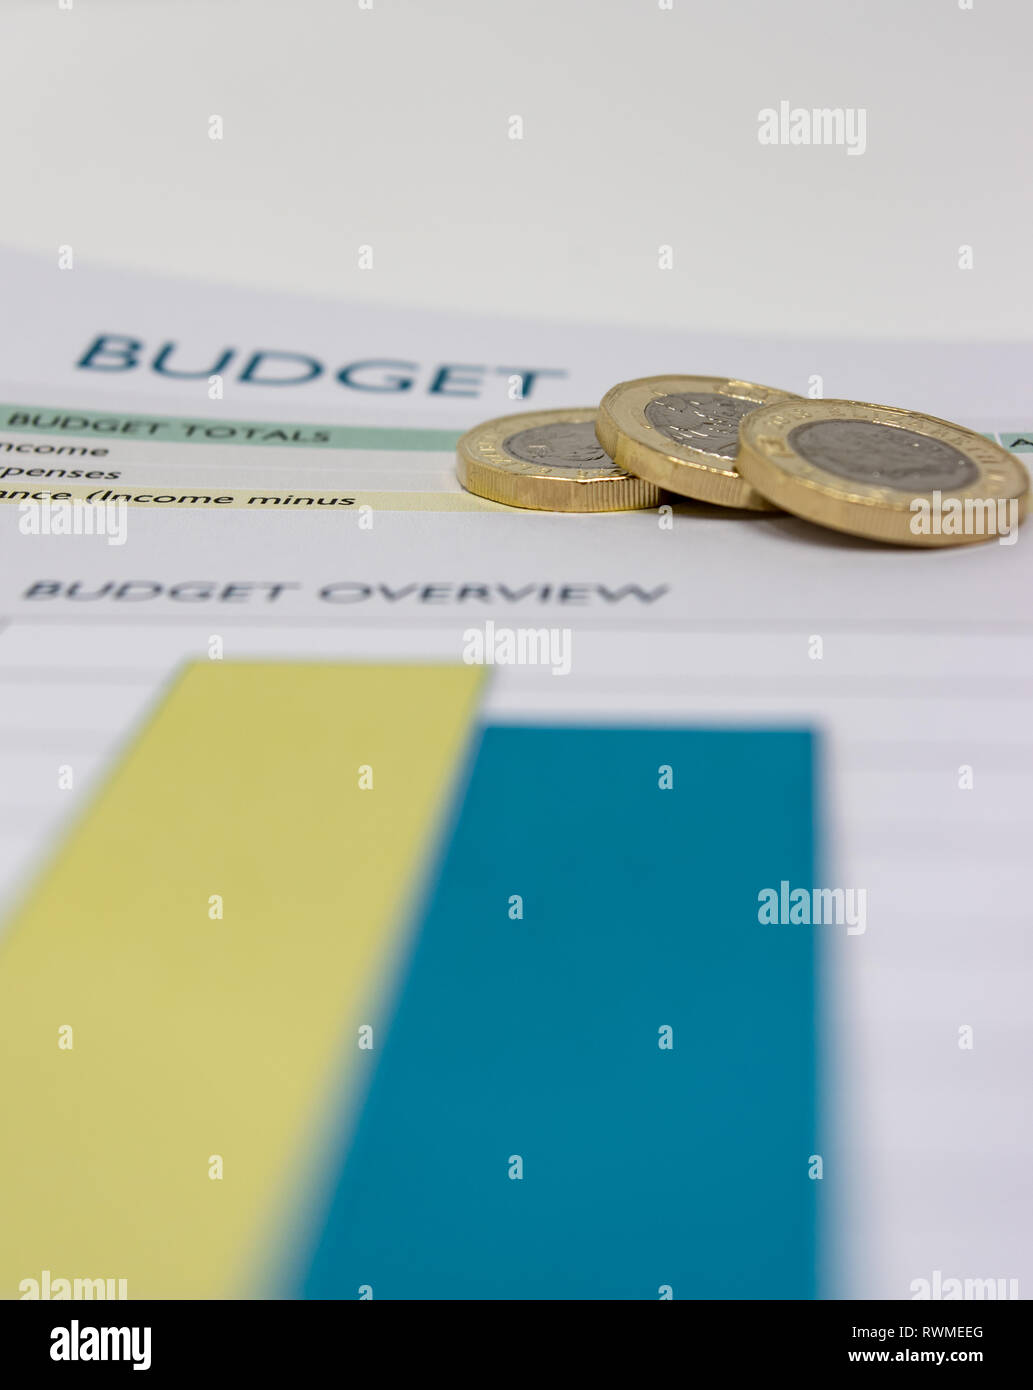 Budget sheet with pound coins on top. - Stock Image